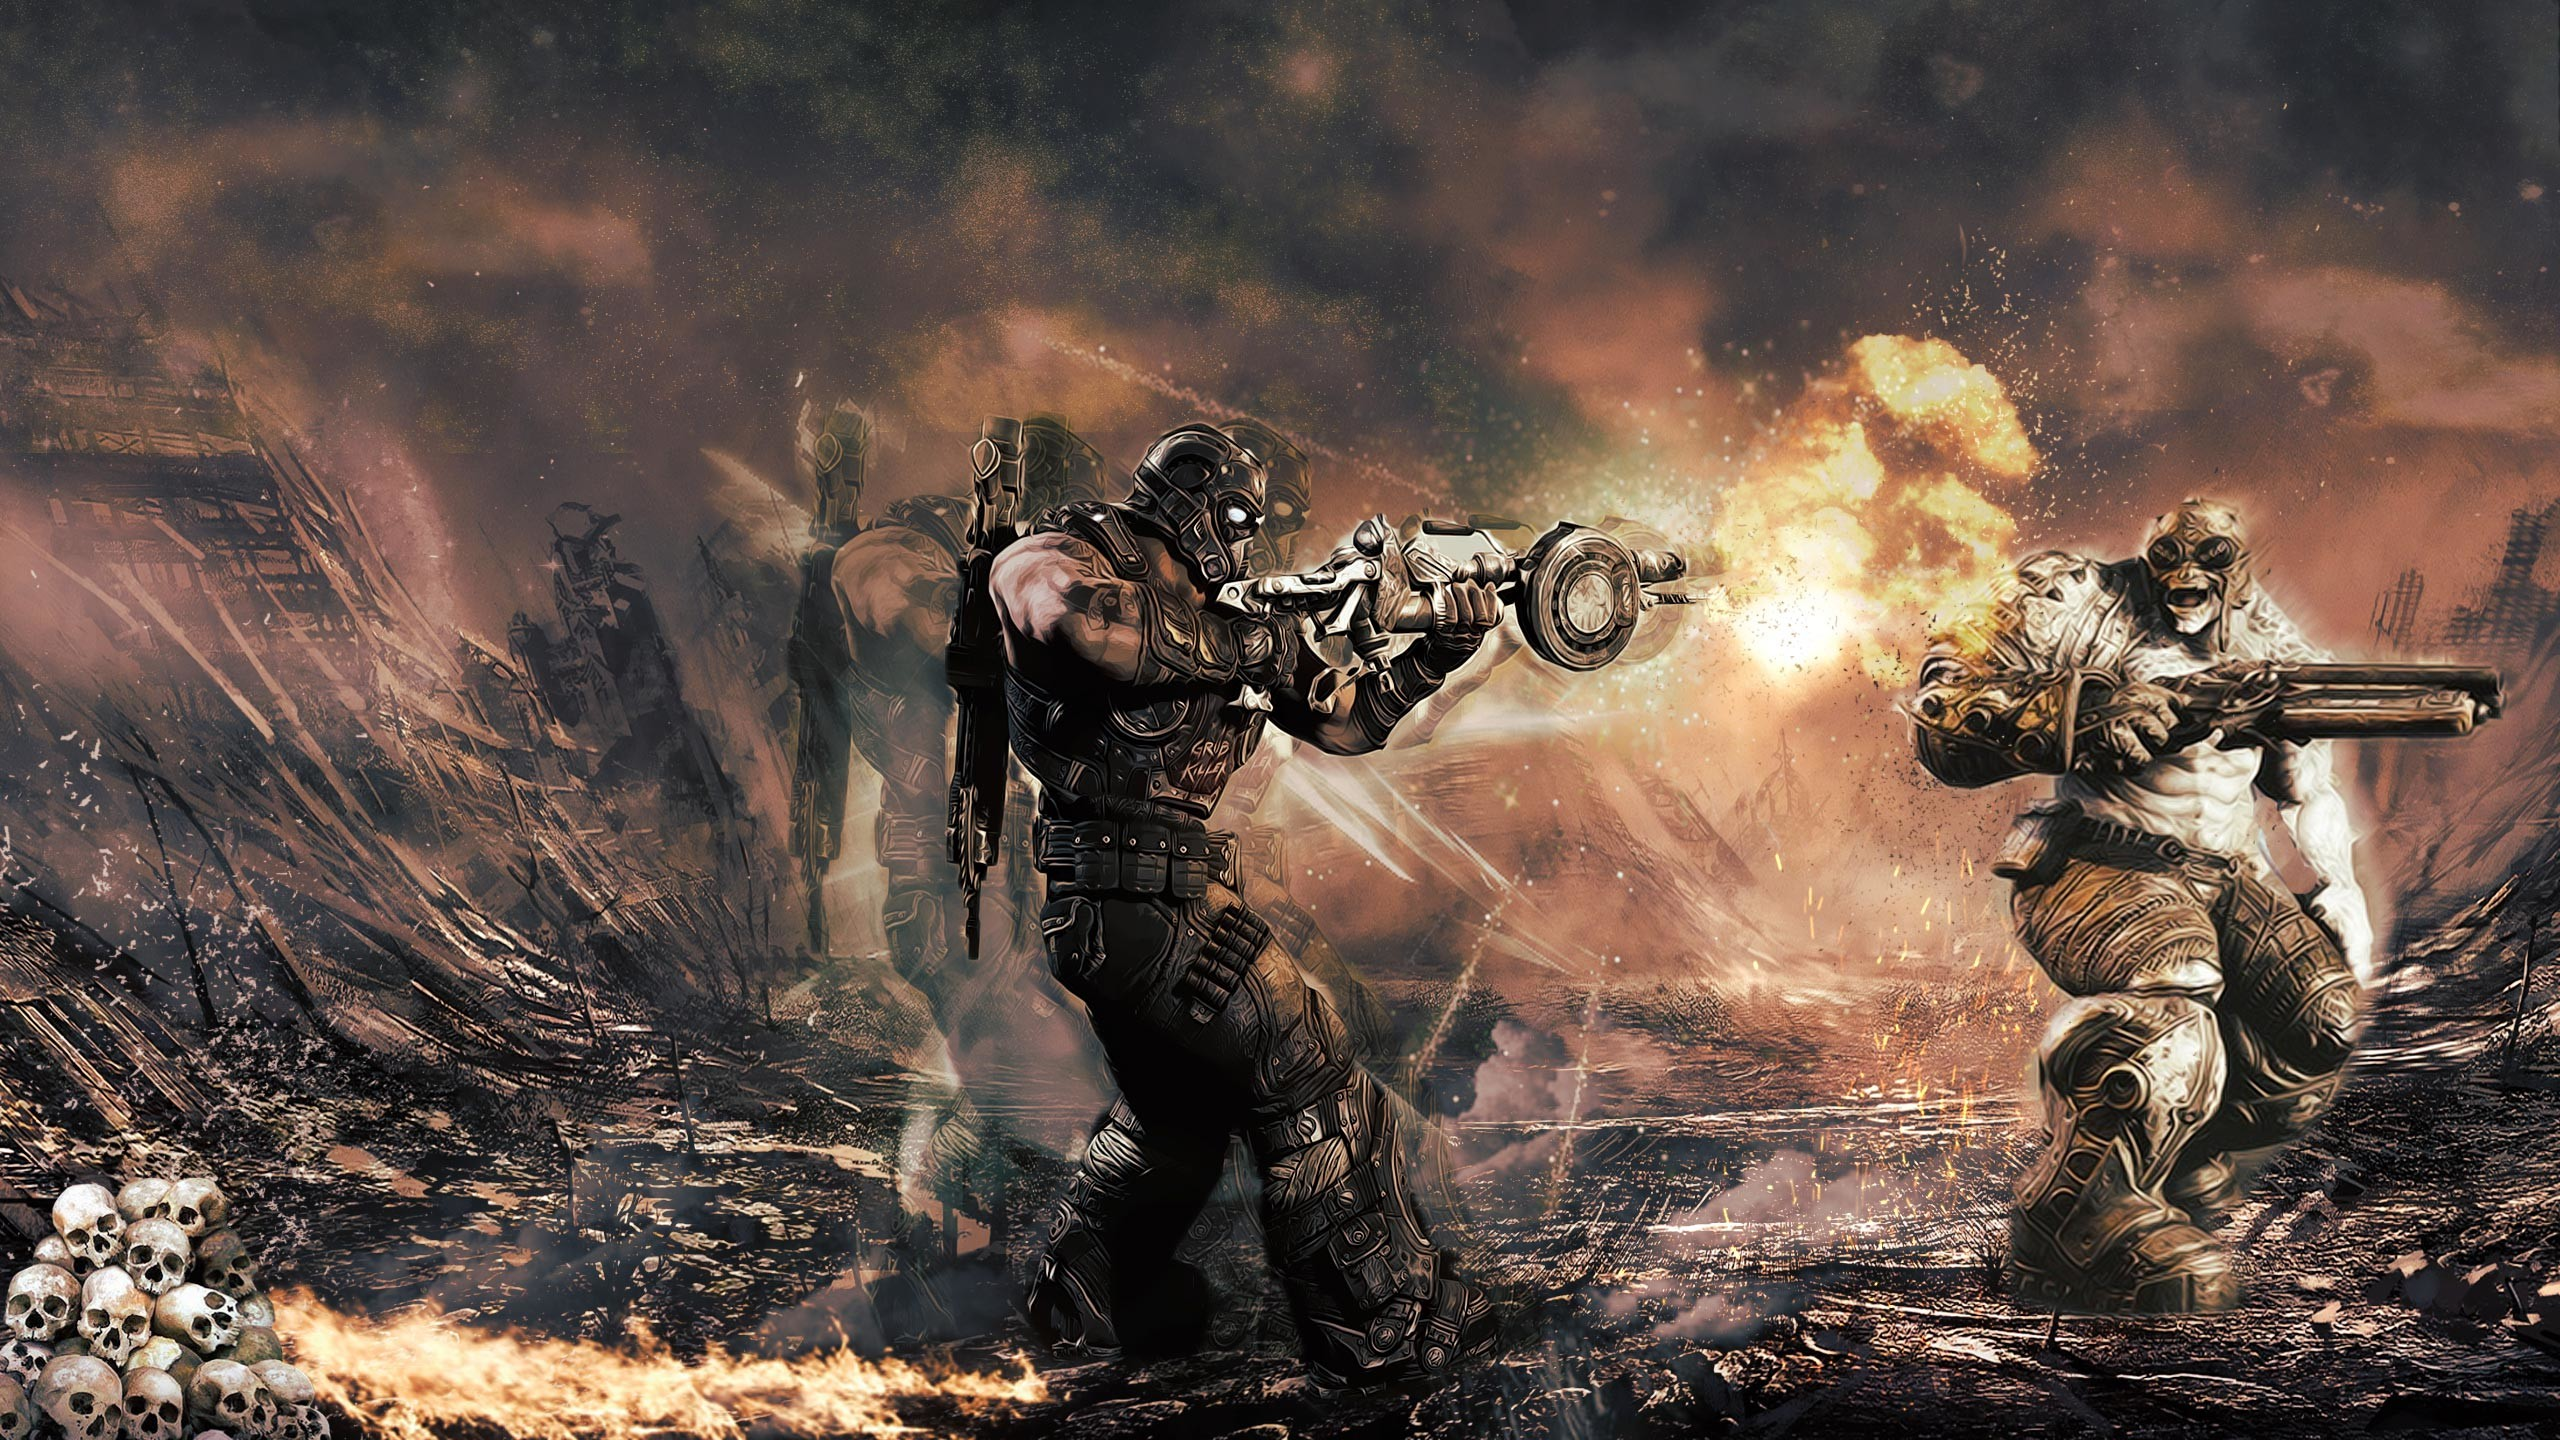 2560x1440 Gears of War 3 Wallpaper 20 - 2560 X 1440